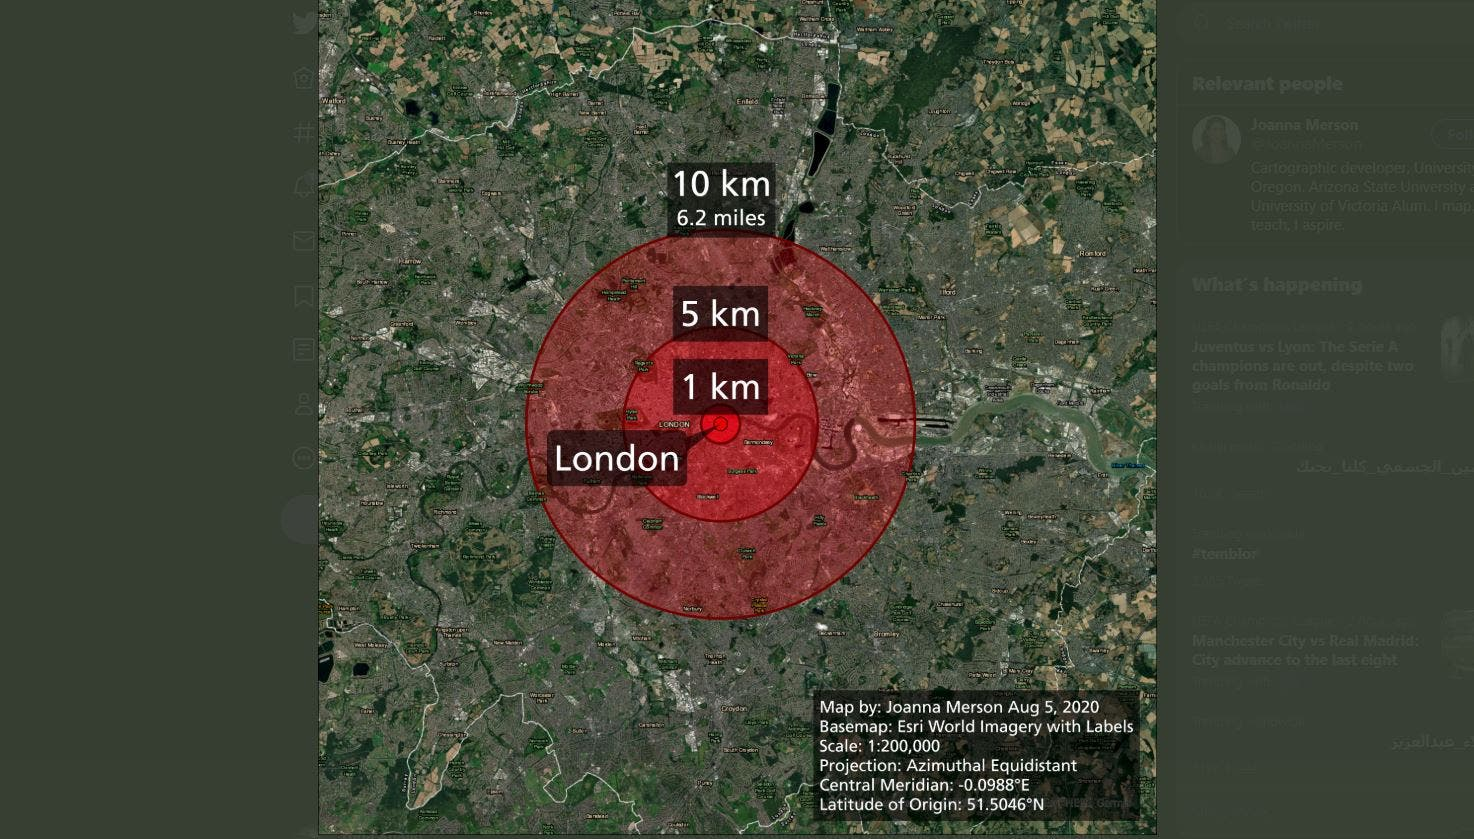 Map showing the damage radius if Beirut's explosion happened in London. (Twitter/ JoannaMerson)